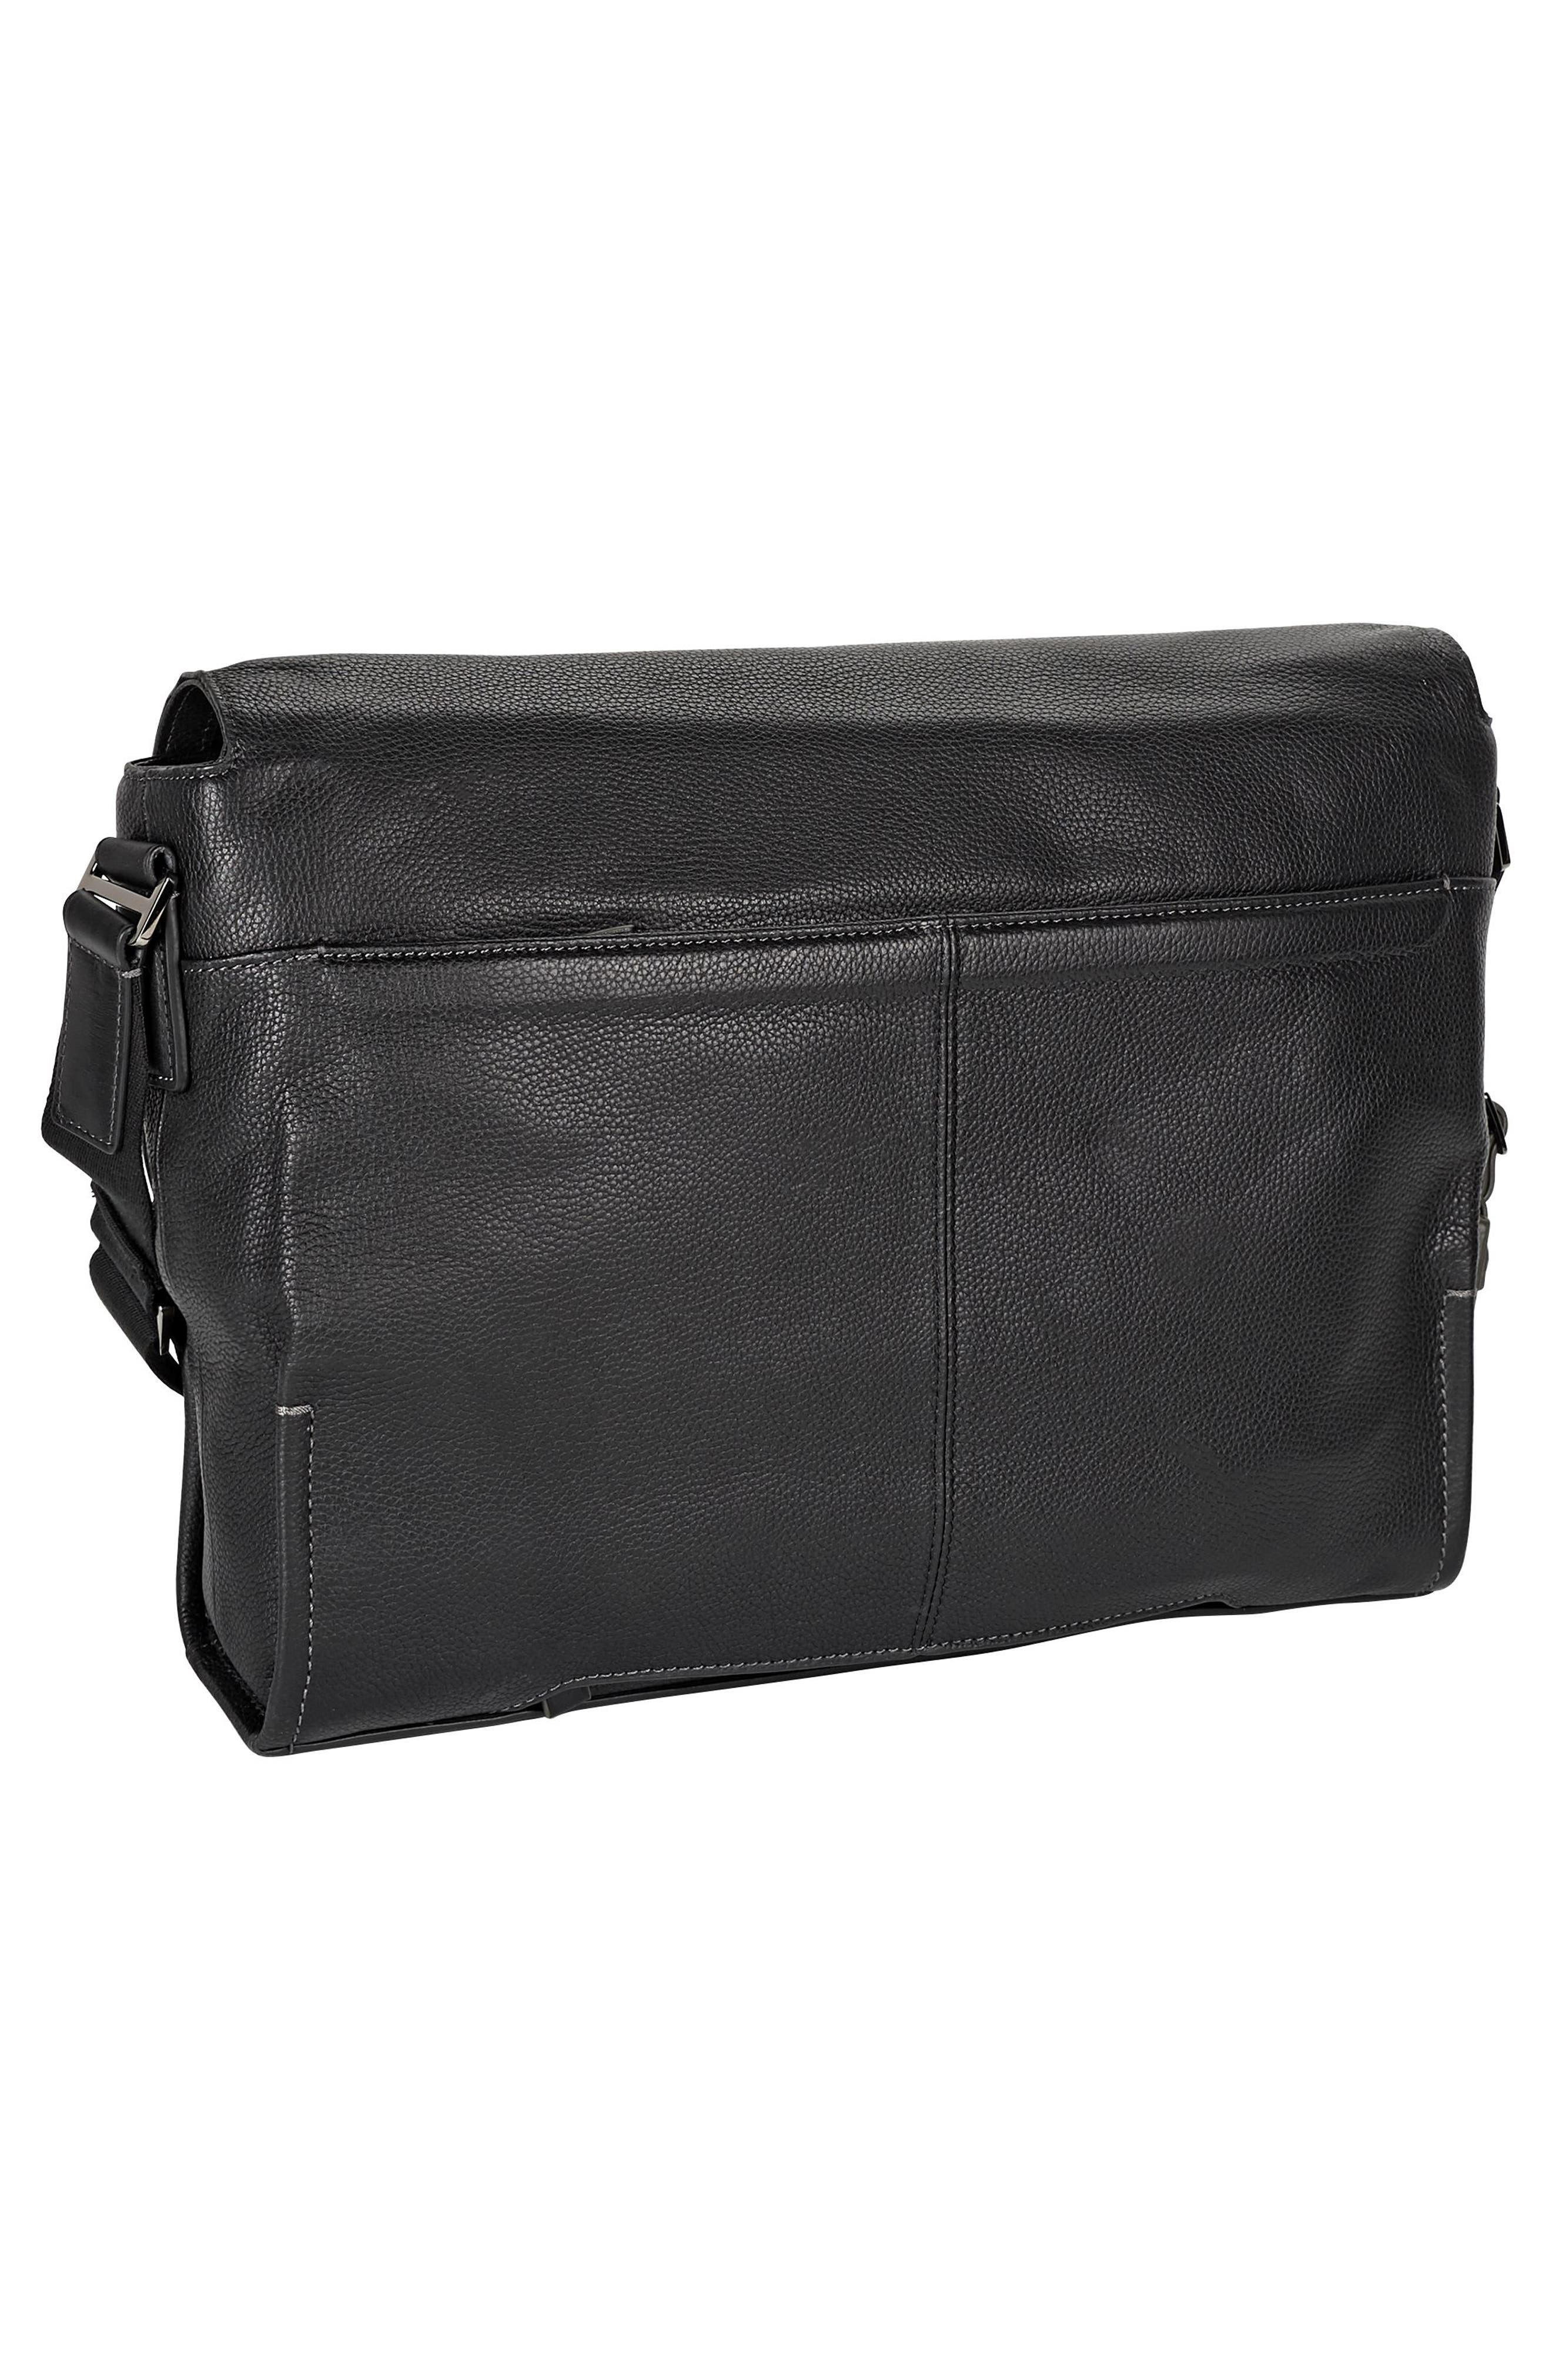 Harrison - Mathews Messenger Bag,                             Alternate thumbnail 3, color,                             Black